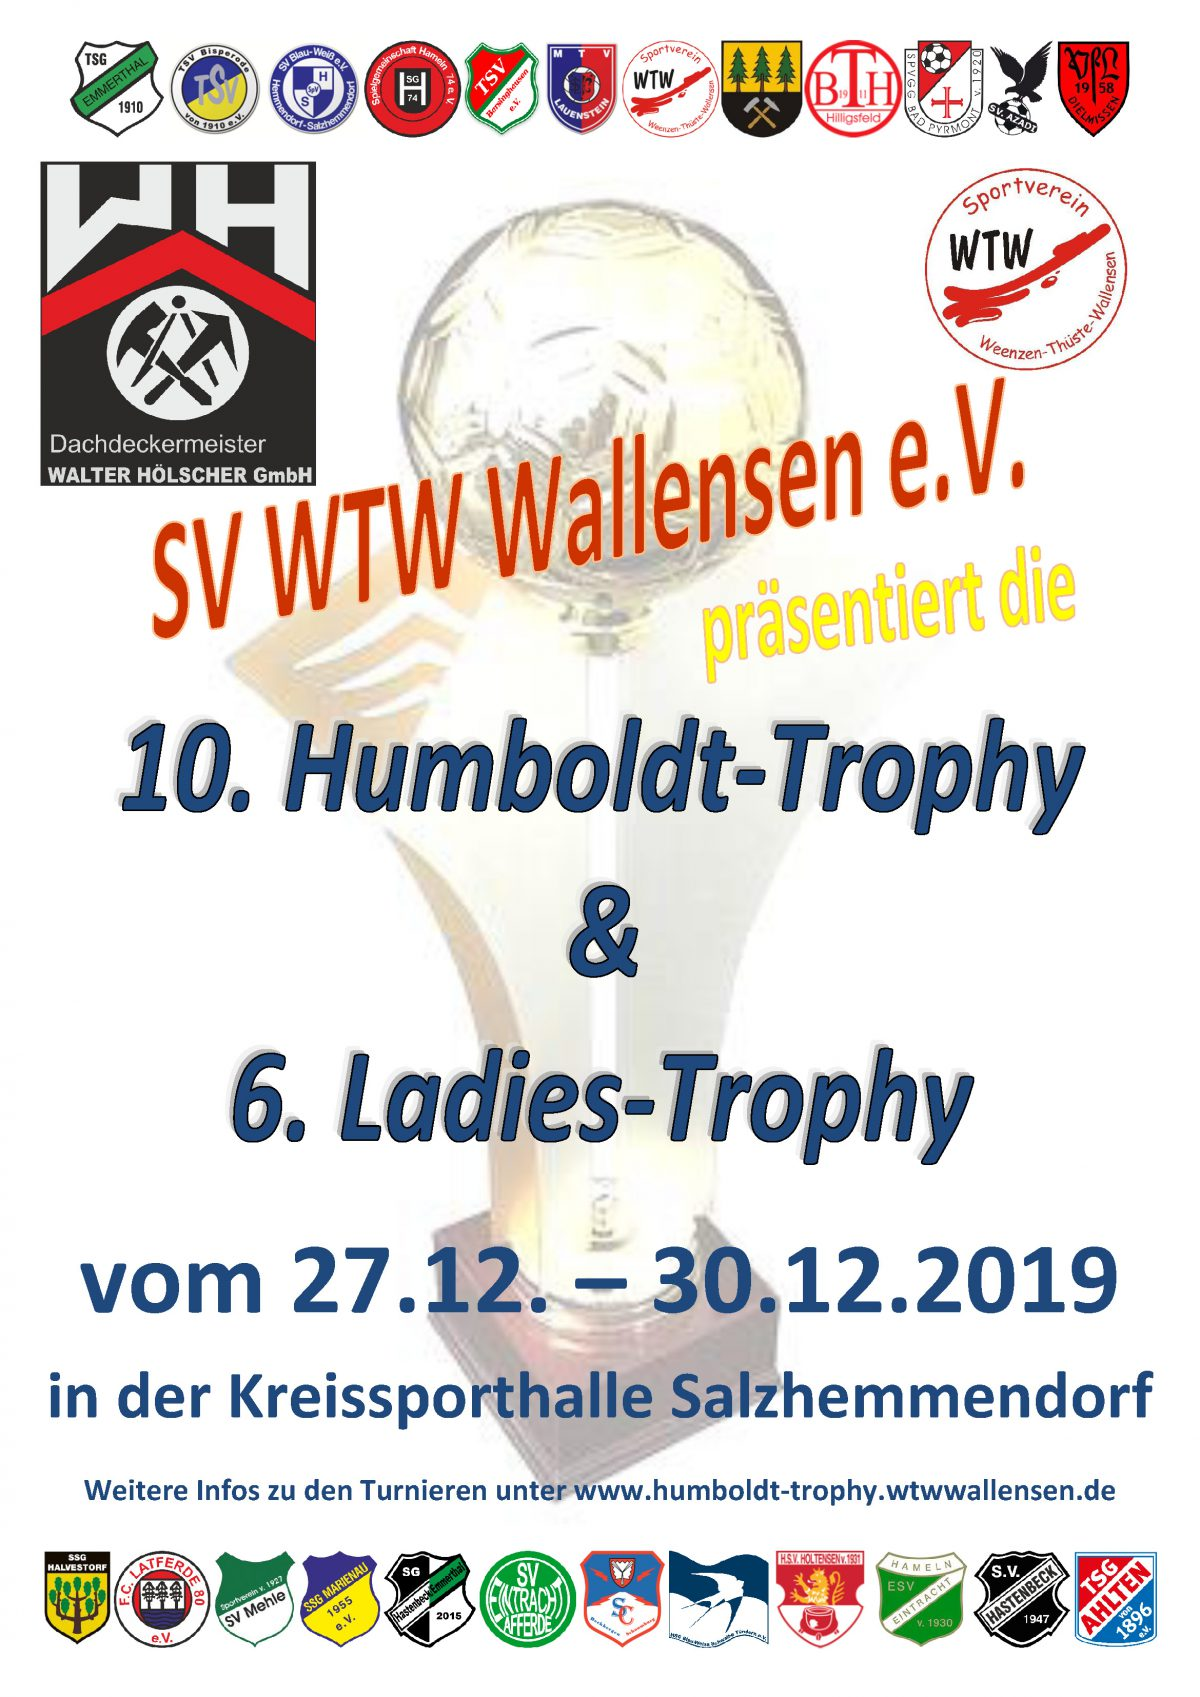 10. Humboldt-Trophy & 6. Ladies-Trophy 2019